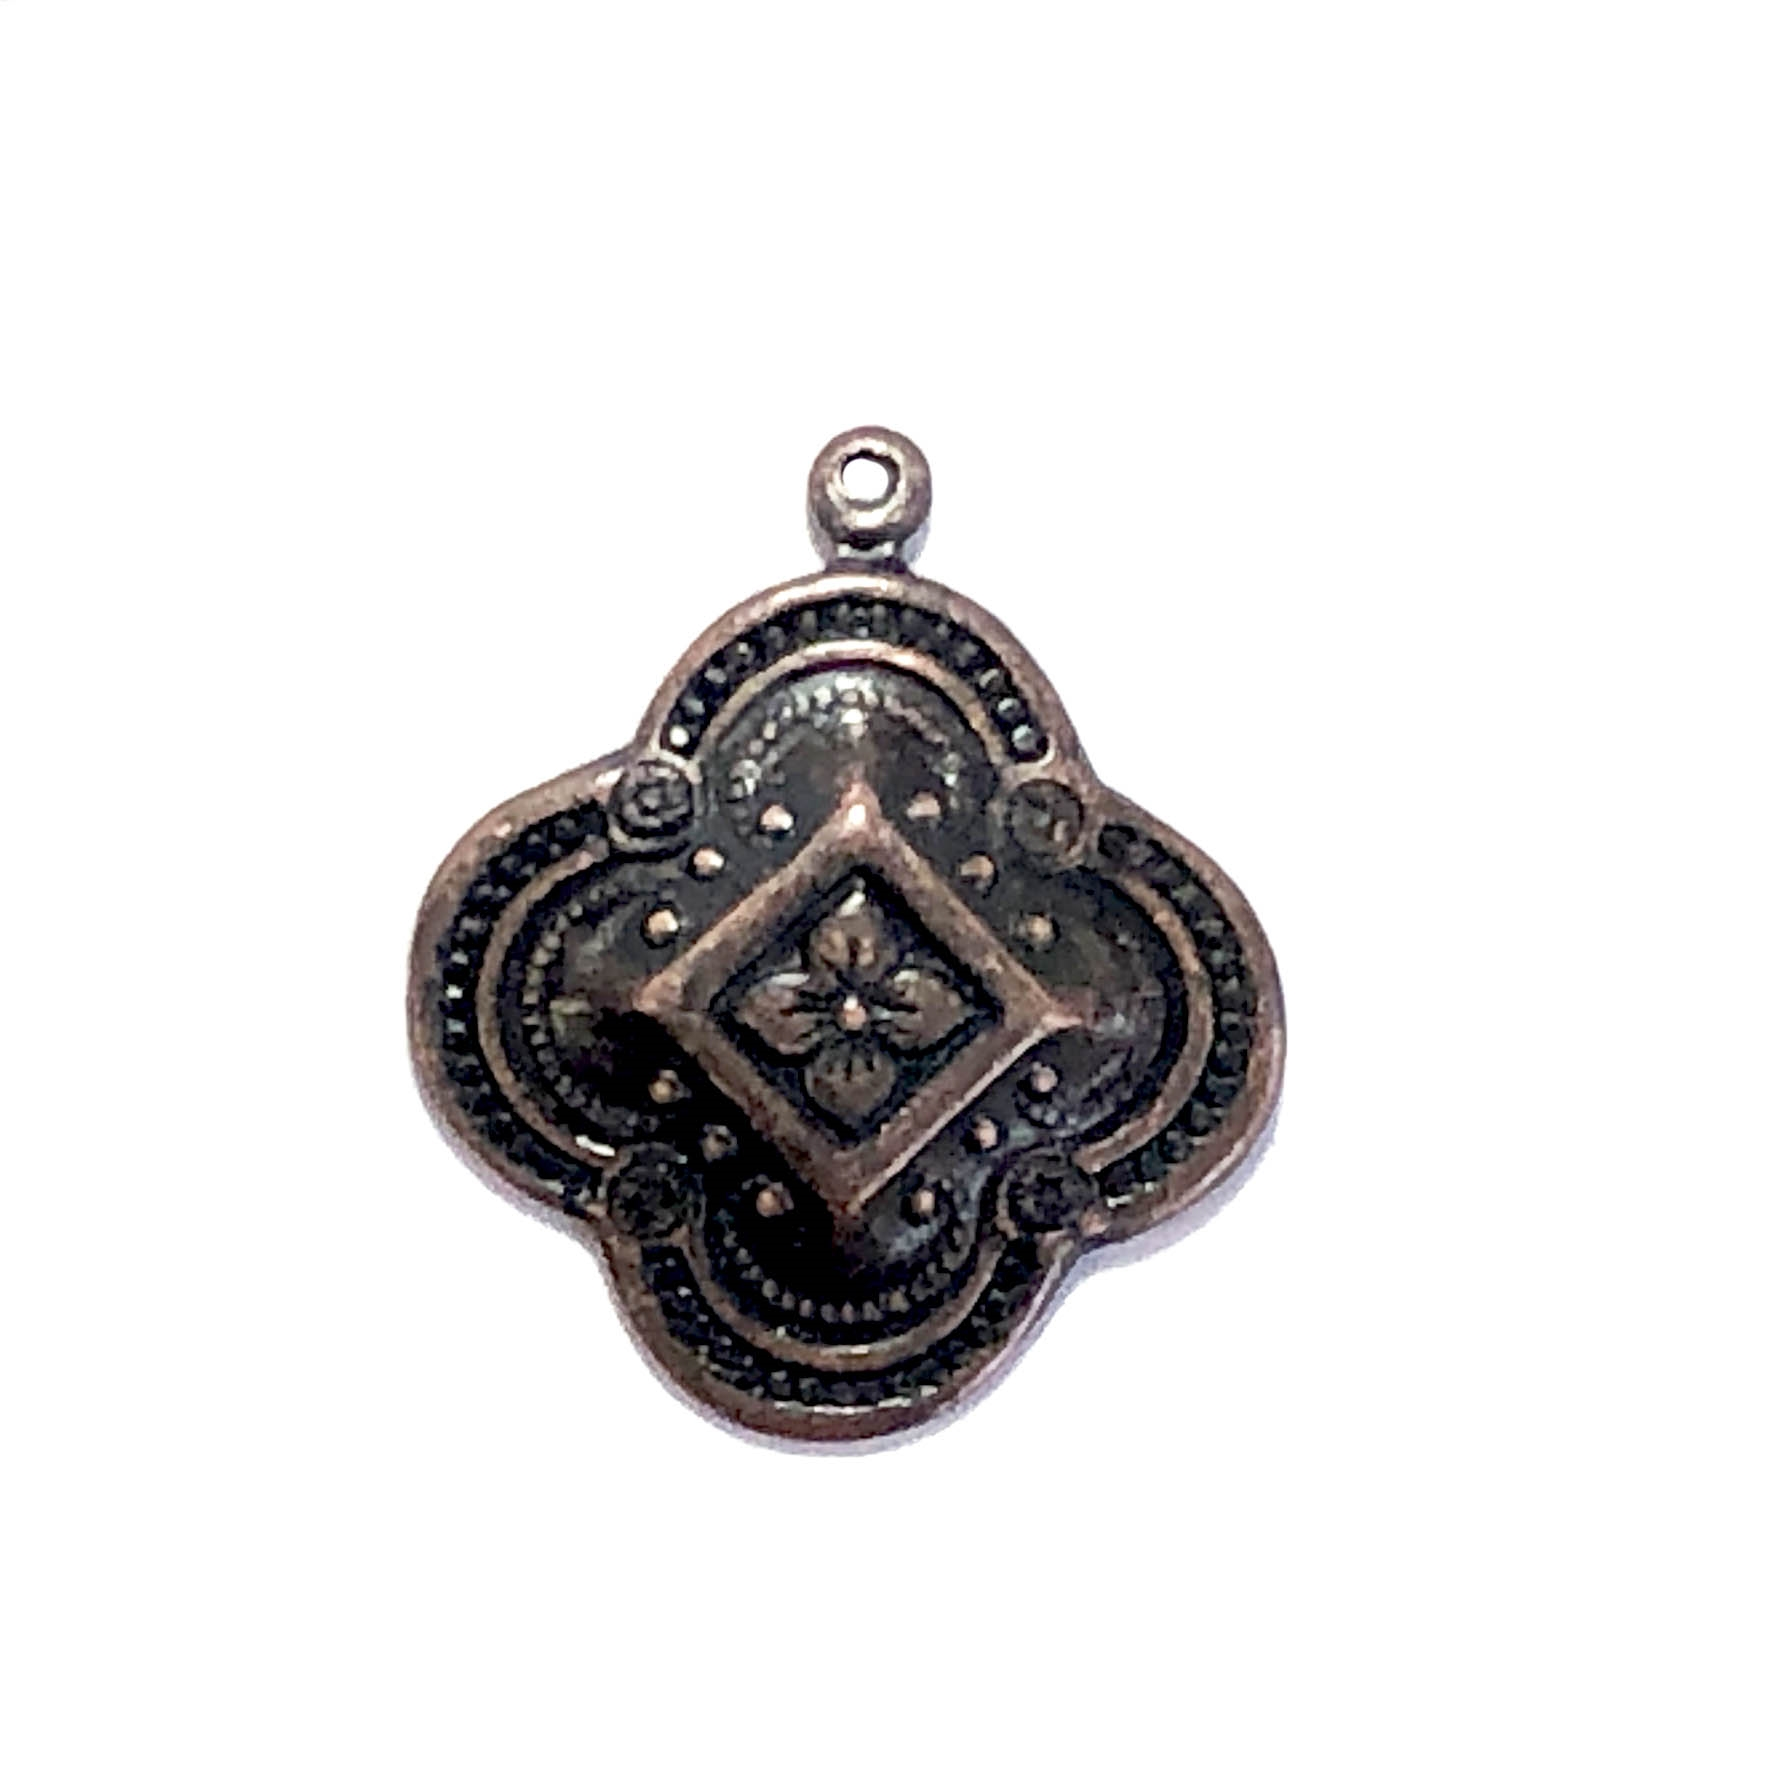 Brass Charm, Victorian Design, Drop, Ear Drops, Charm, Rusted Iron Brass, Vintage Style Drops, Jewelry Findings, Nickel Free, Brass Stamping, Charm Accents, US Made, 15mm, Vintage, Victorian, Style, B'sue Boutiques, Pendant, 09600